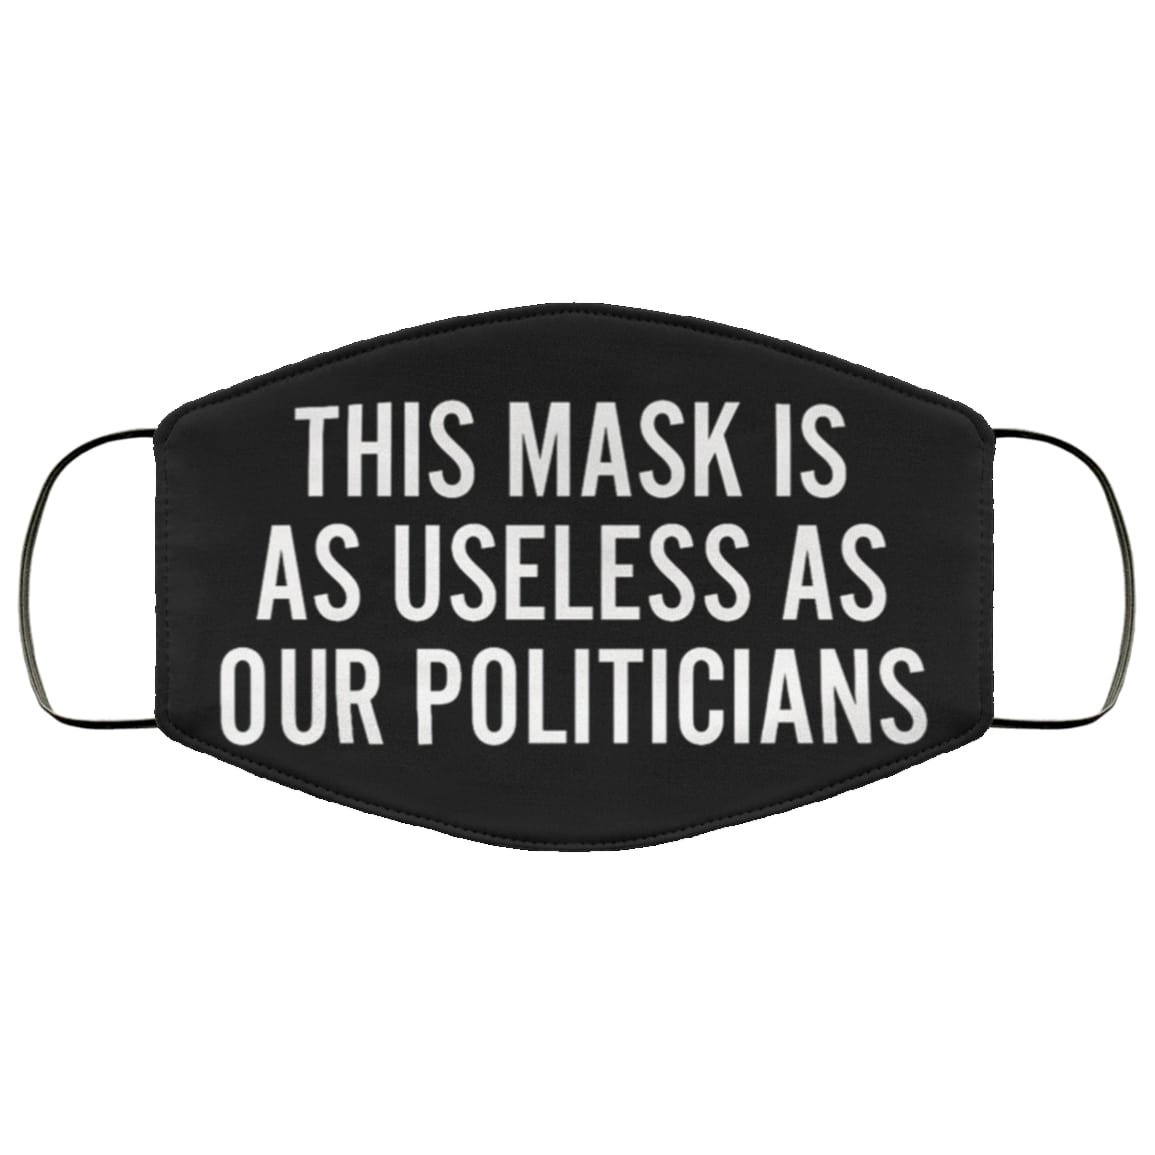 This mask is as useless as our politicians face mask 2